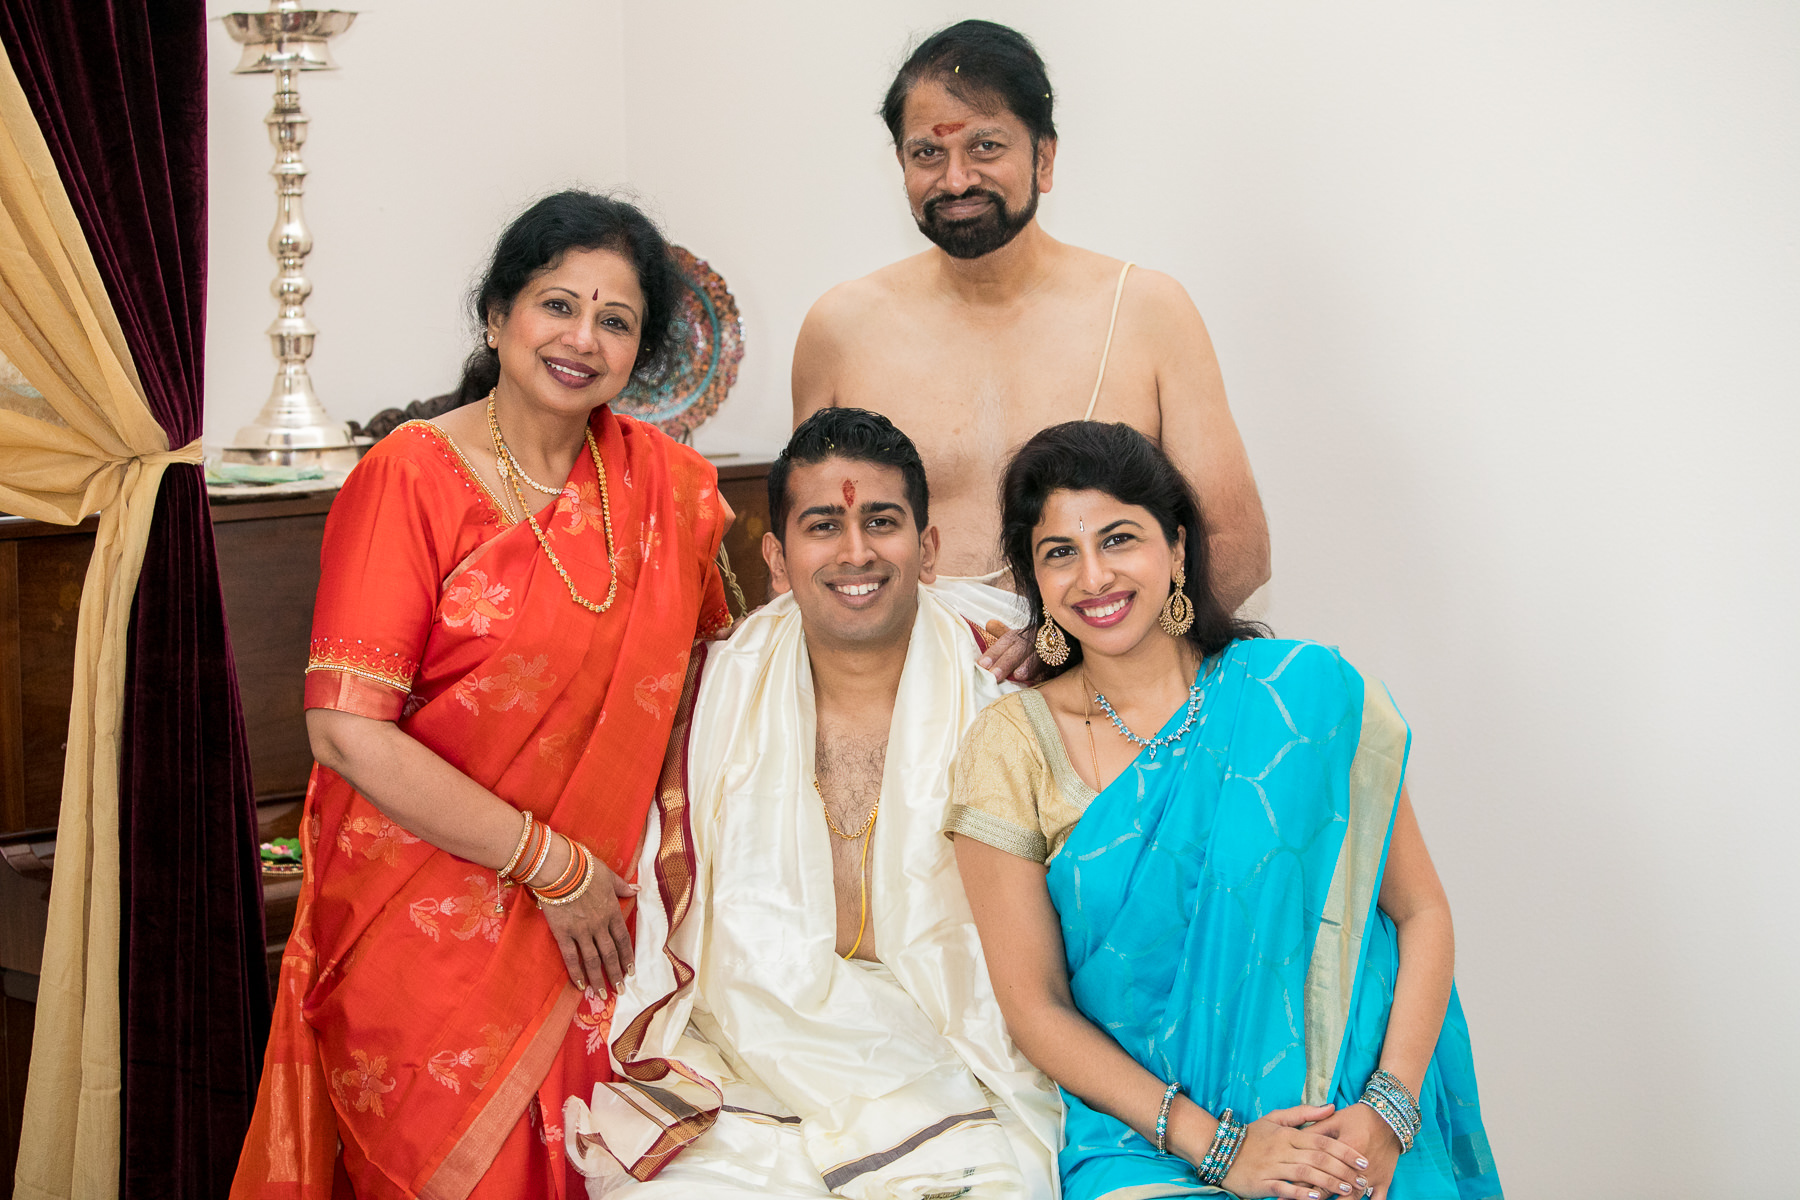 indian family portrait during pre hindu wedding rituals